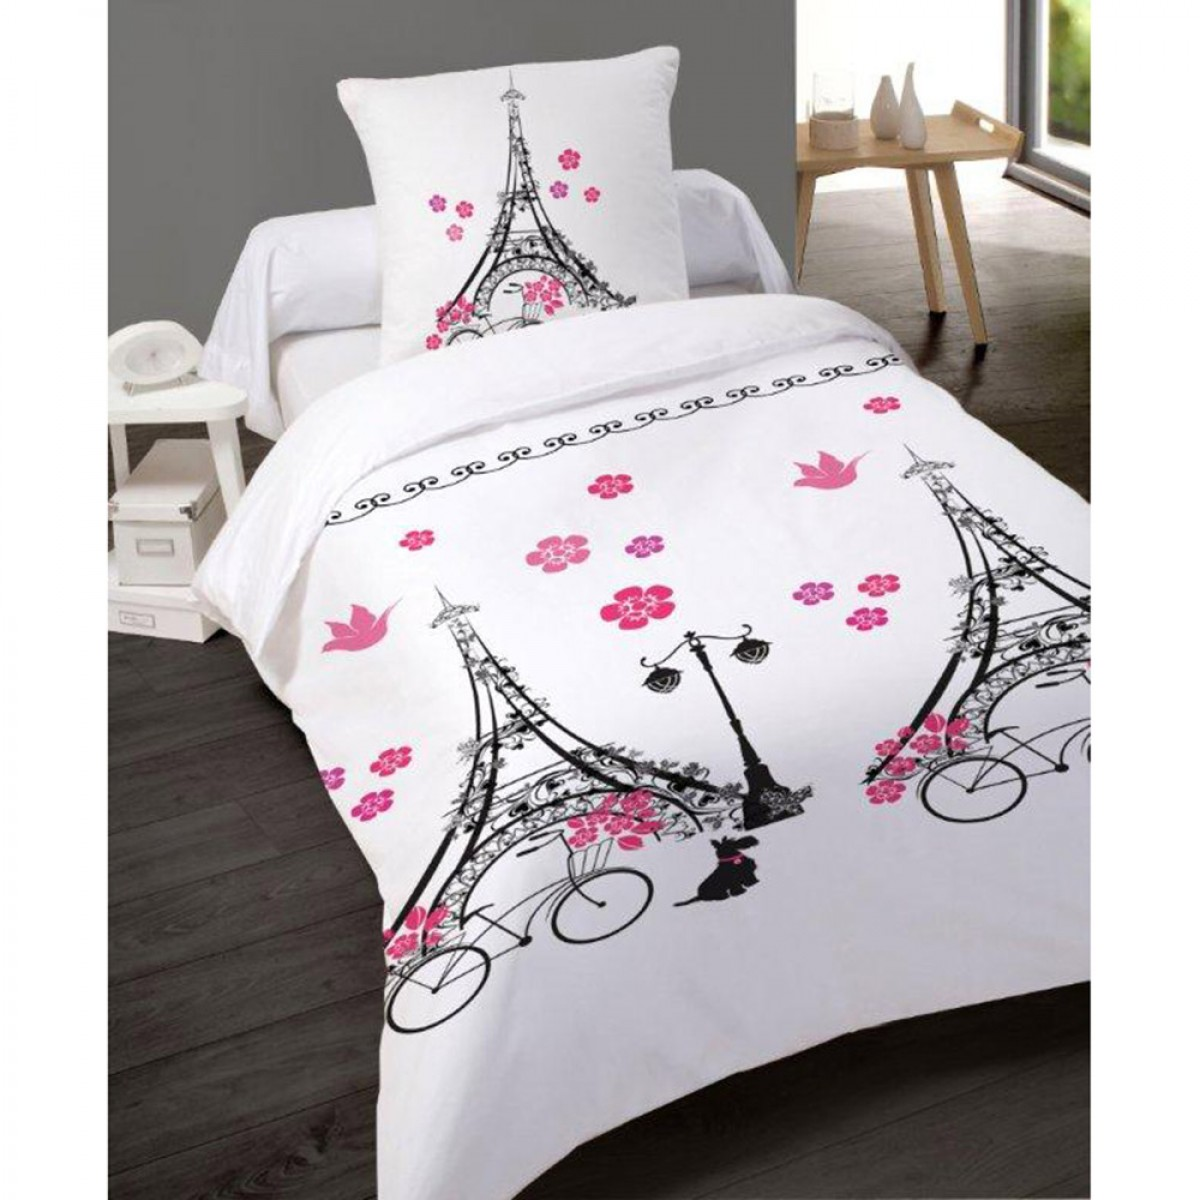 housse de couette 140x200 cm paris v lo en coton les. Black Bedroom Furniture Sets. Home Design Ideas